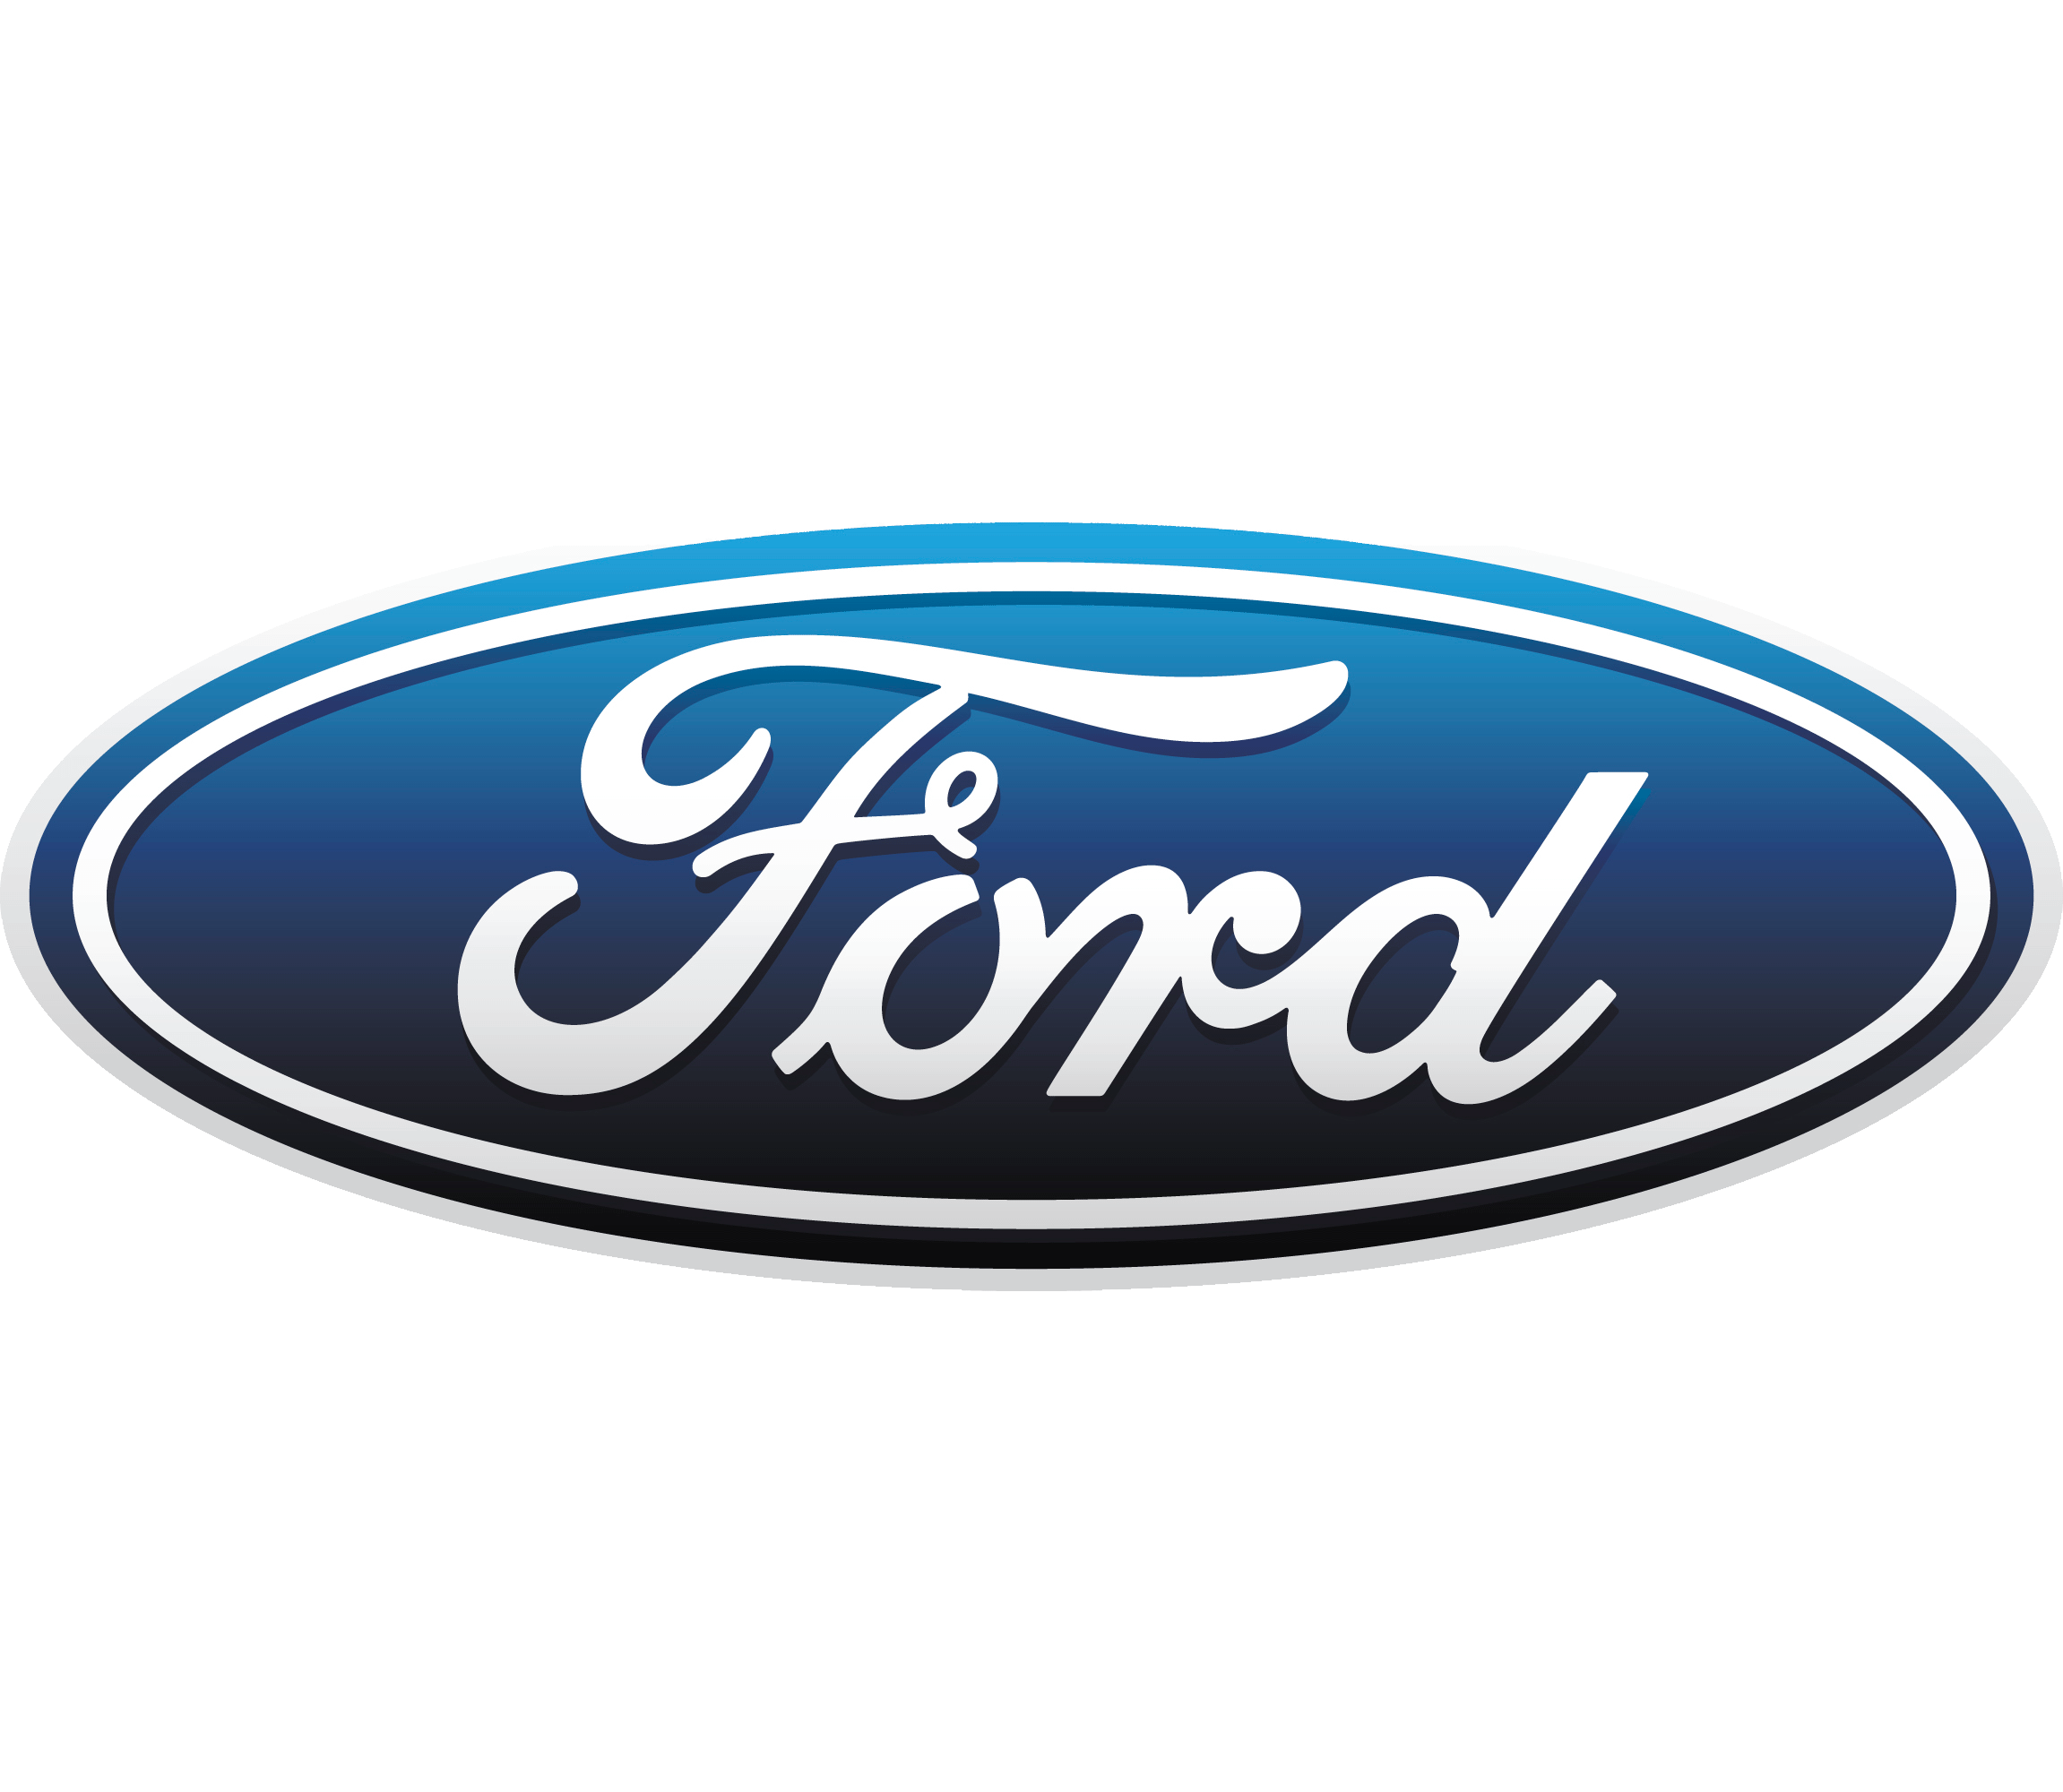 Build Your Own Custom Ford Vehicle Damerow Ford >> Ford Motor Company And Mount Vernon A Shared History George